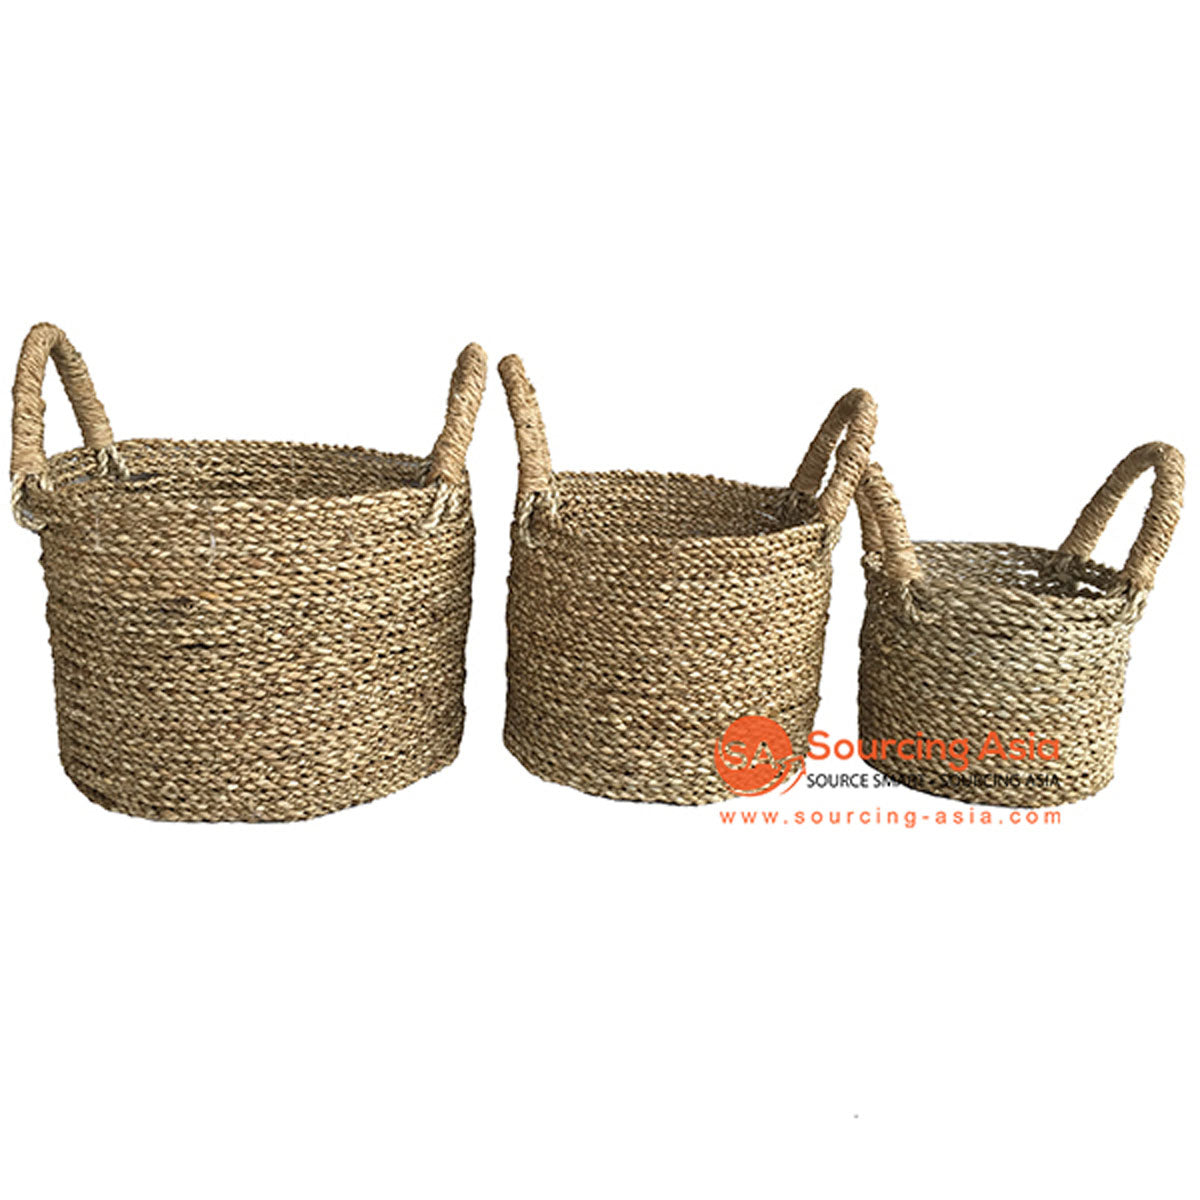 SHL057-2 SET OF THREE NATURAL SEAGRASS BASKETS WITH HANDLE